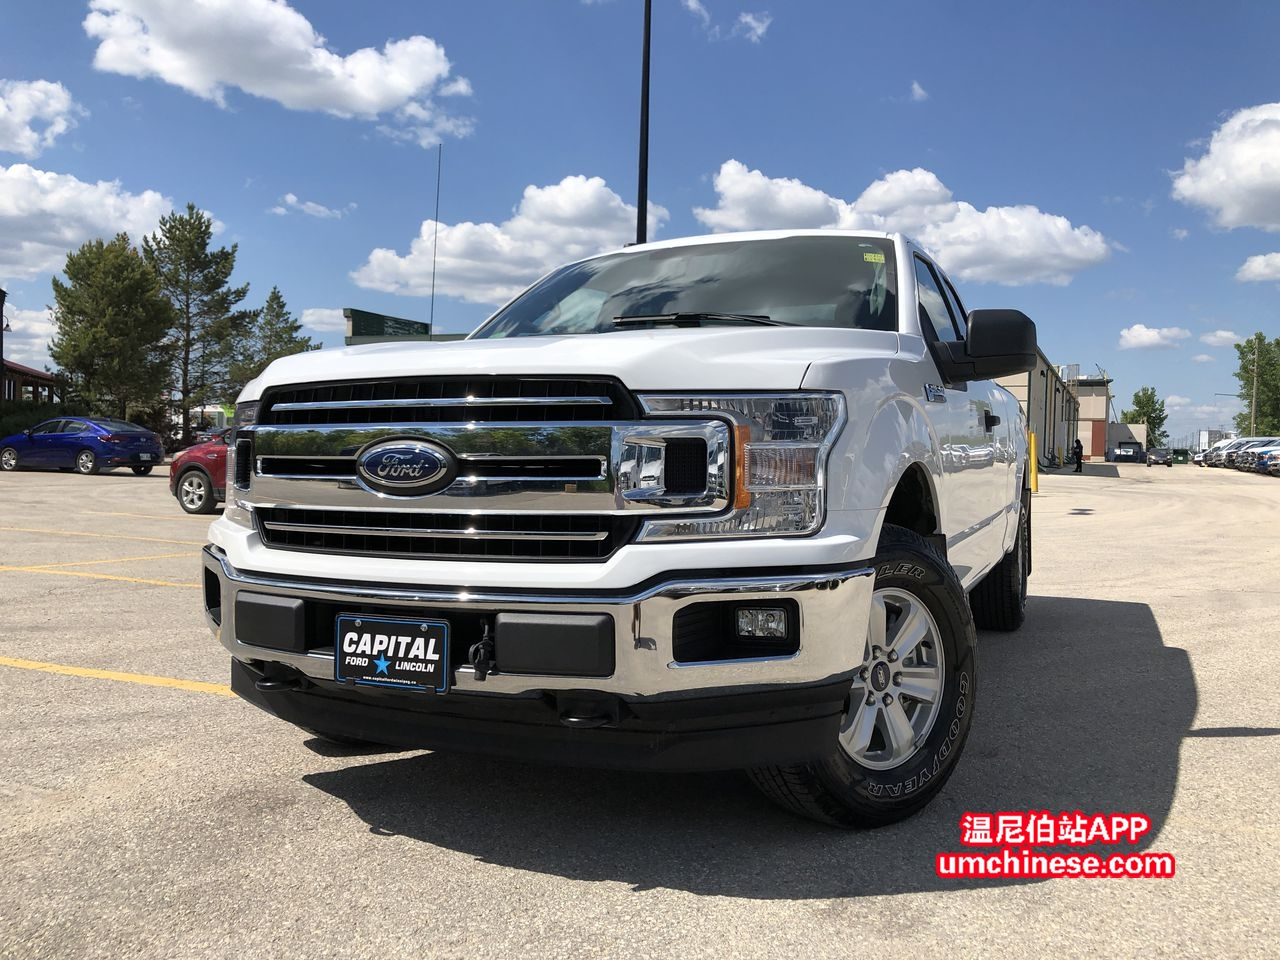 capital ford winnipeg 2018f-150-front.jpg